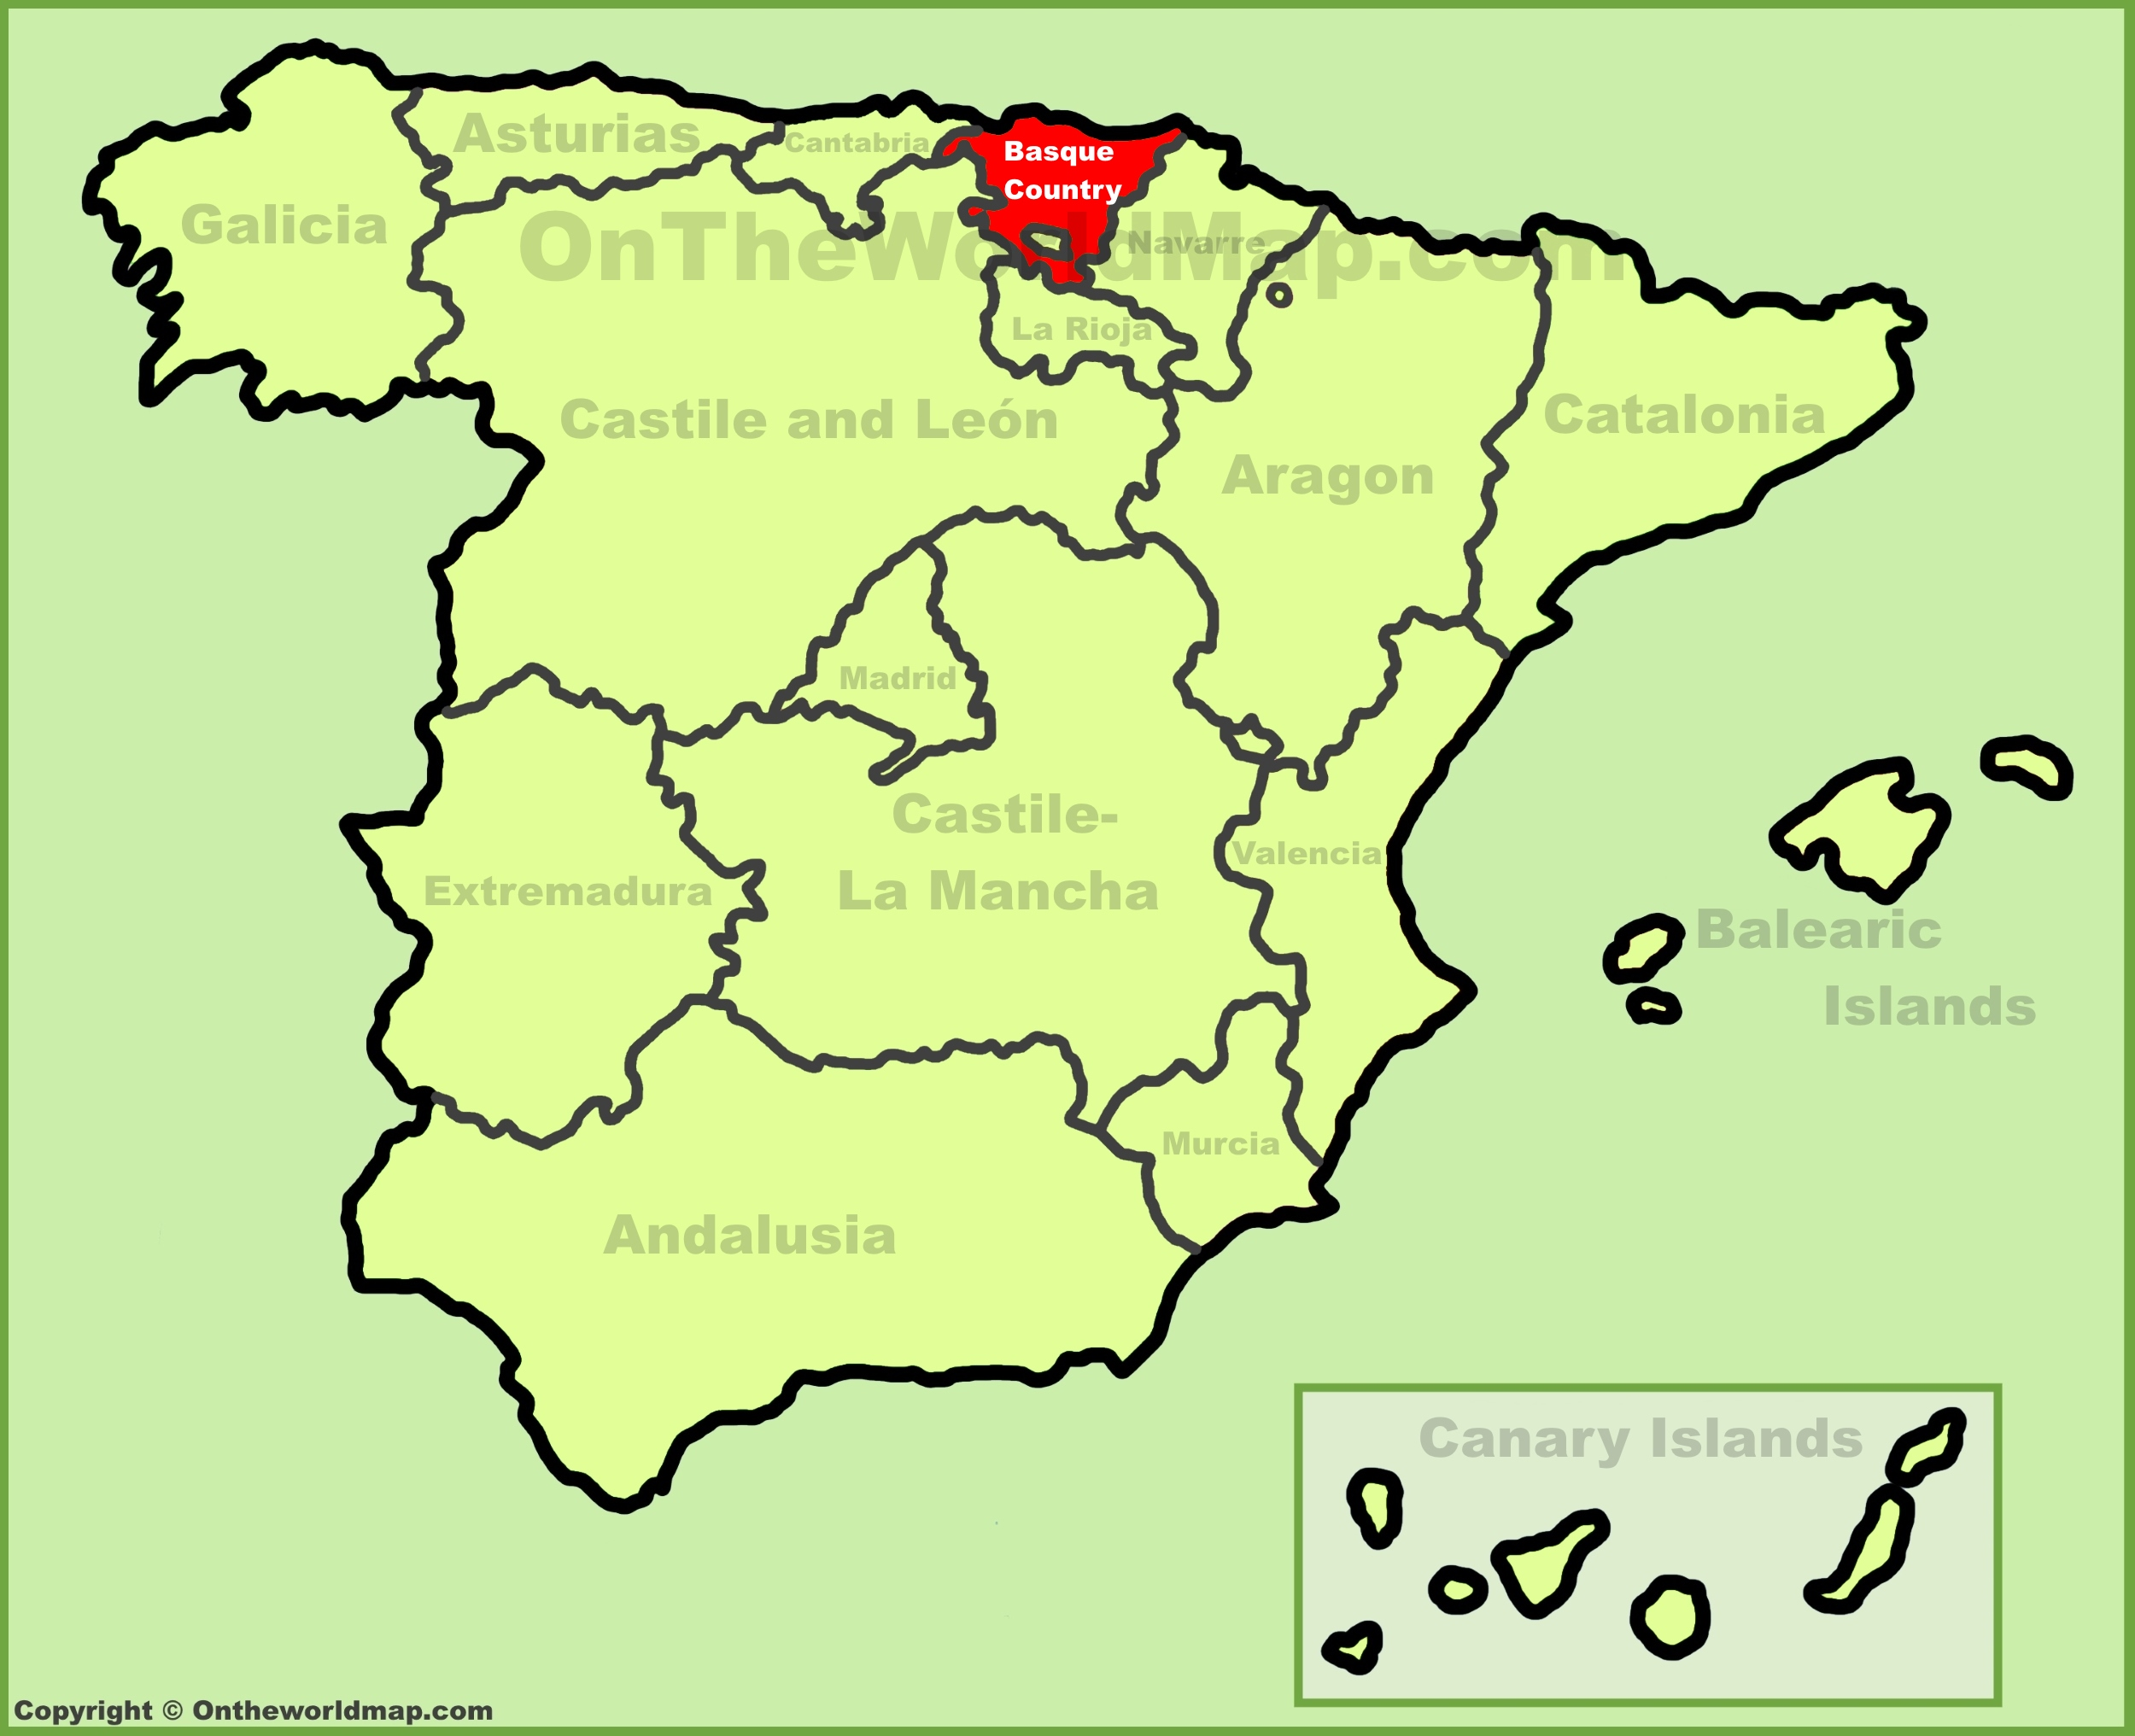 Basque Country Map Basque Country Maps | Spain | Maps of Basque Country (Euskadi)